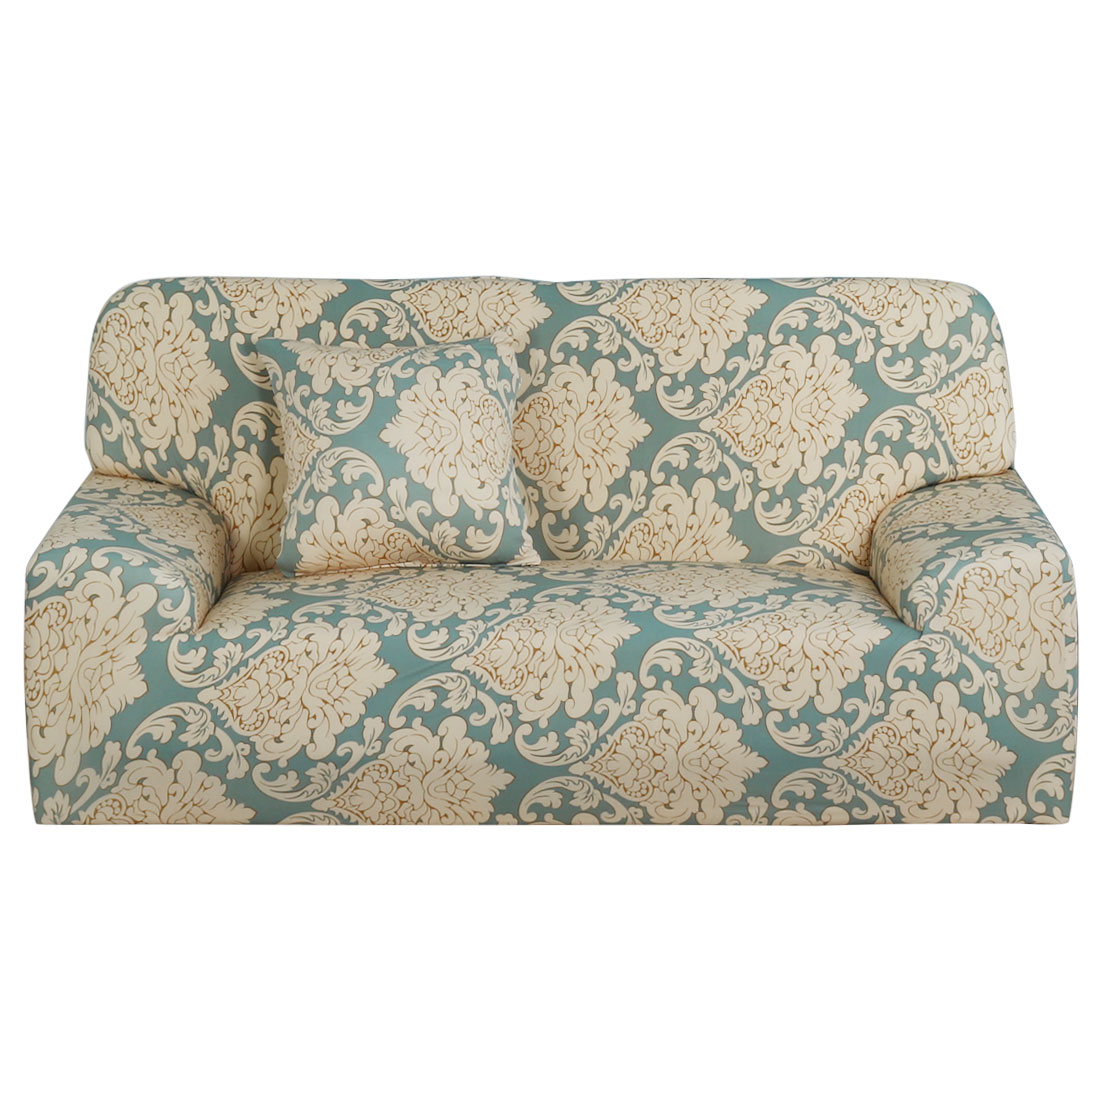 Household Polyester Leave Flower Pattern Elastic Sofa Loveseat Cover Slipcover Protector 55-74 Inch